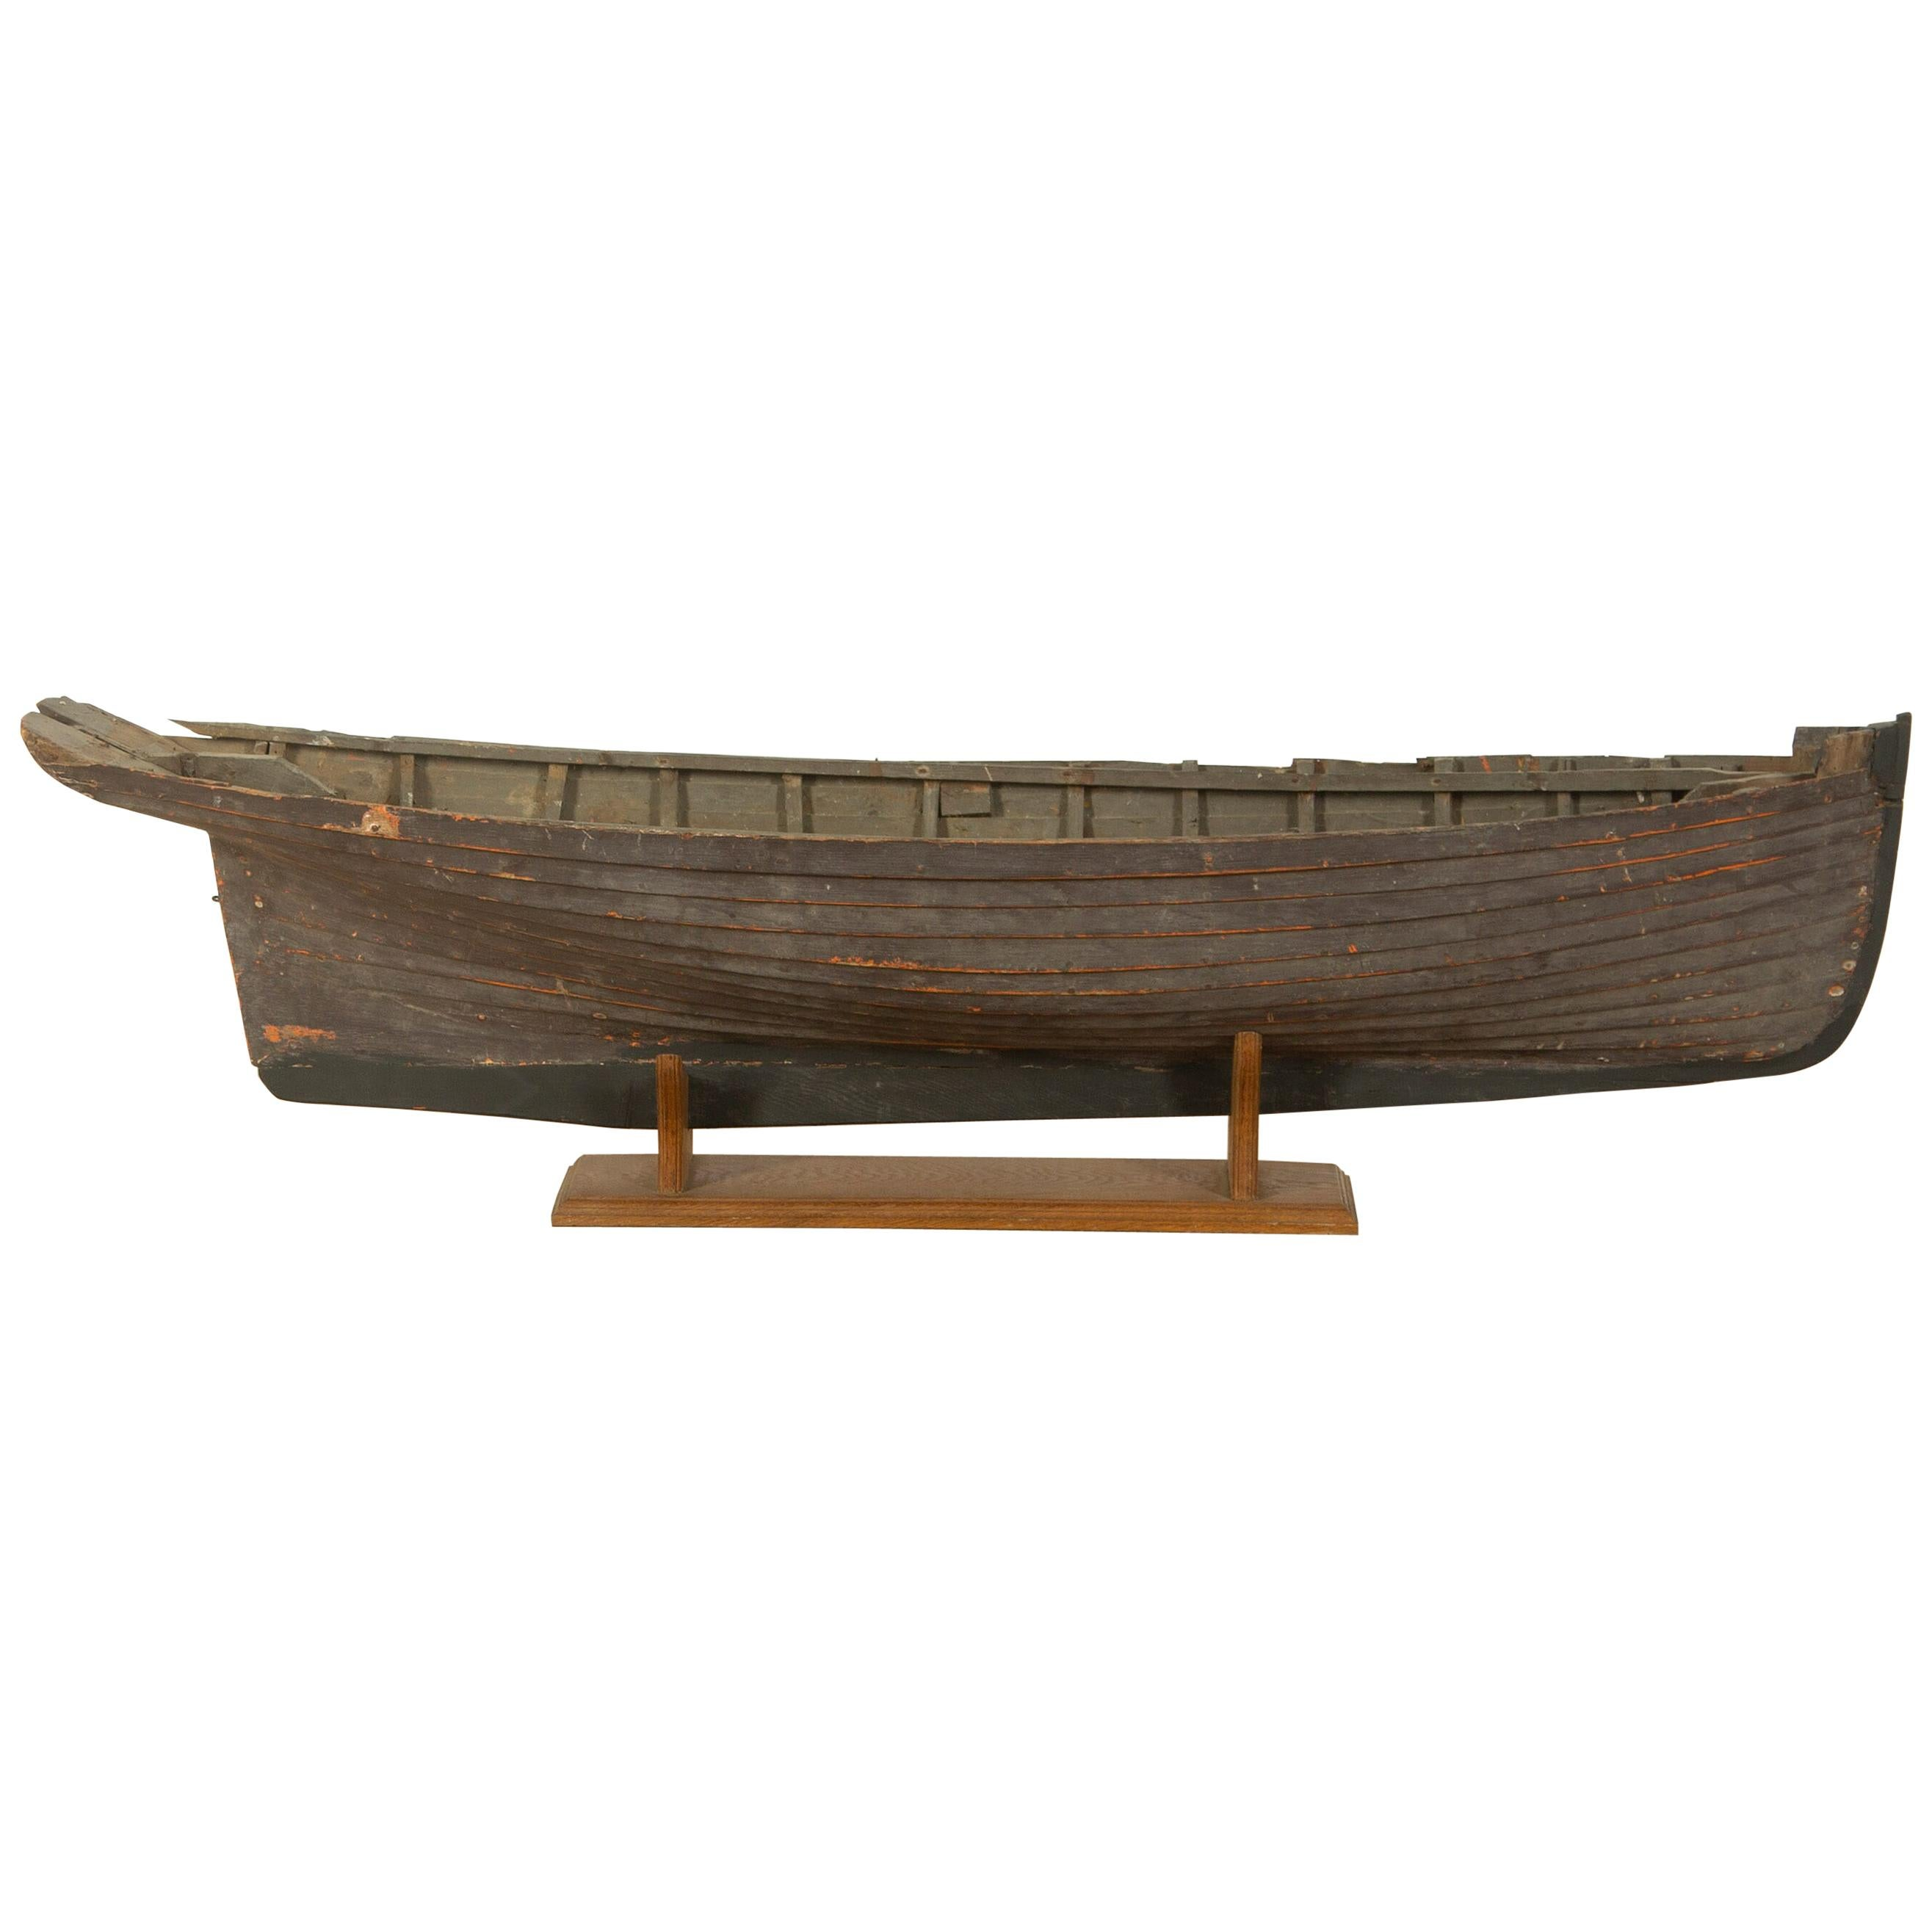 Wooden Clinker Boat Hull on Stand